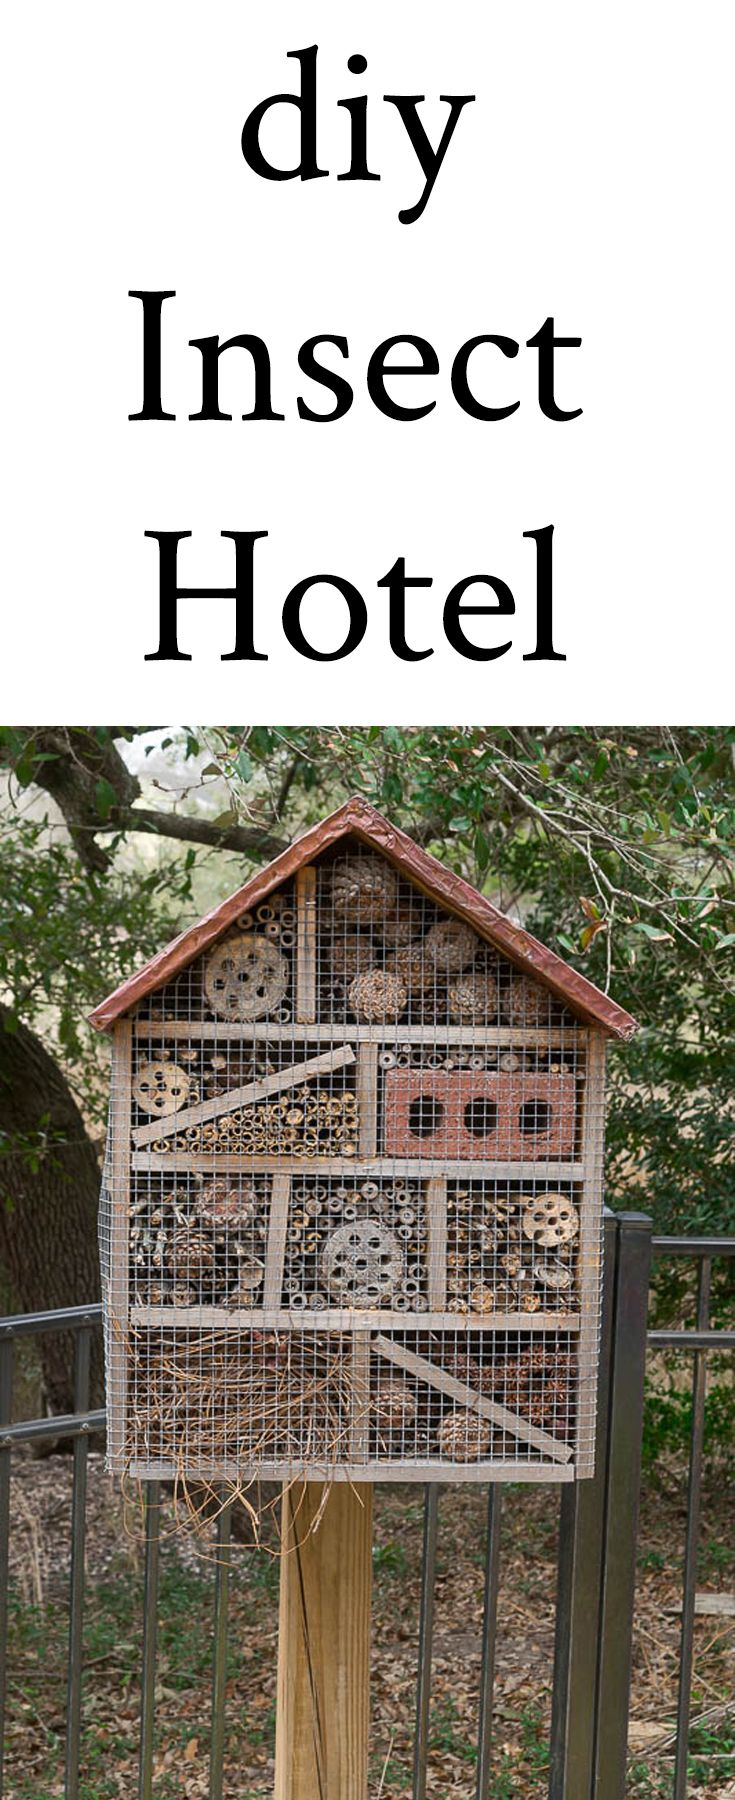 Why and How to build an Insect Hotel. Insect hotels attract and house beneficial insects and bees, which are especially helpful in organic gardening. #diy #gardening #beneficialinsects #bees